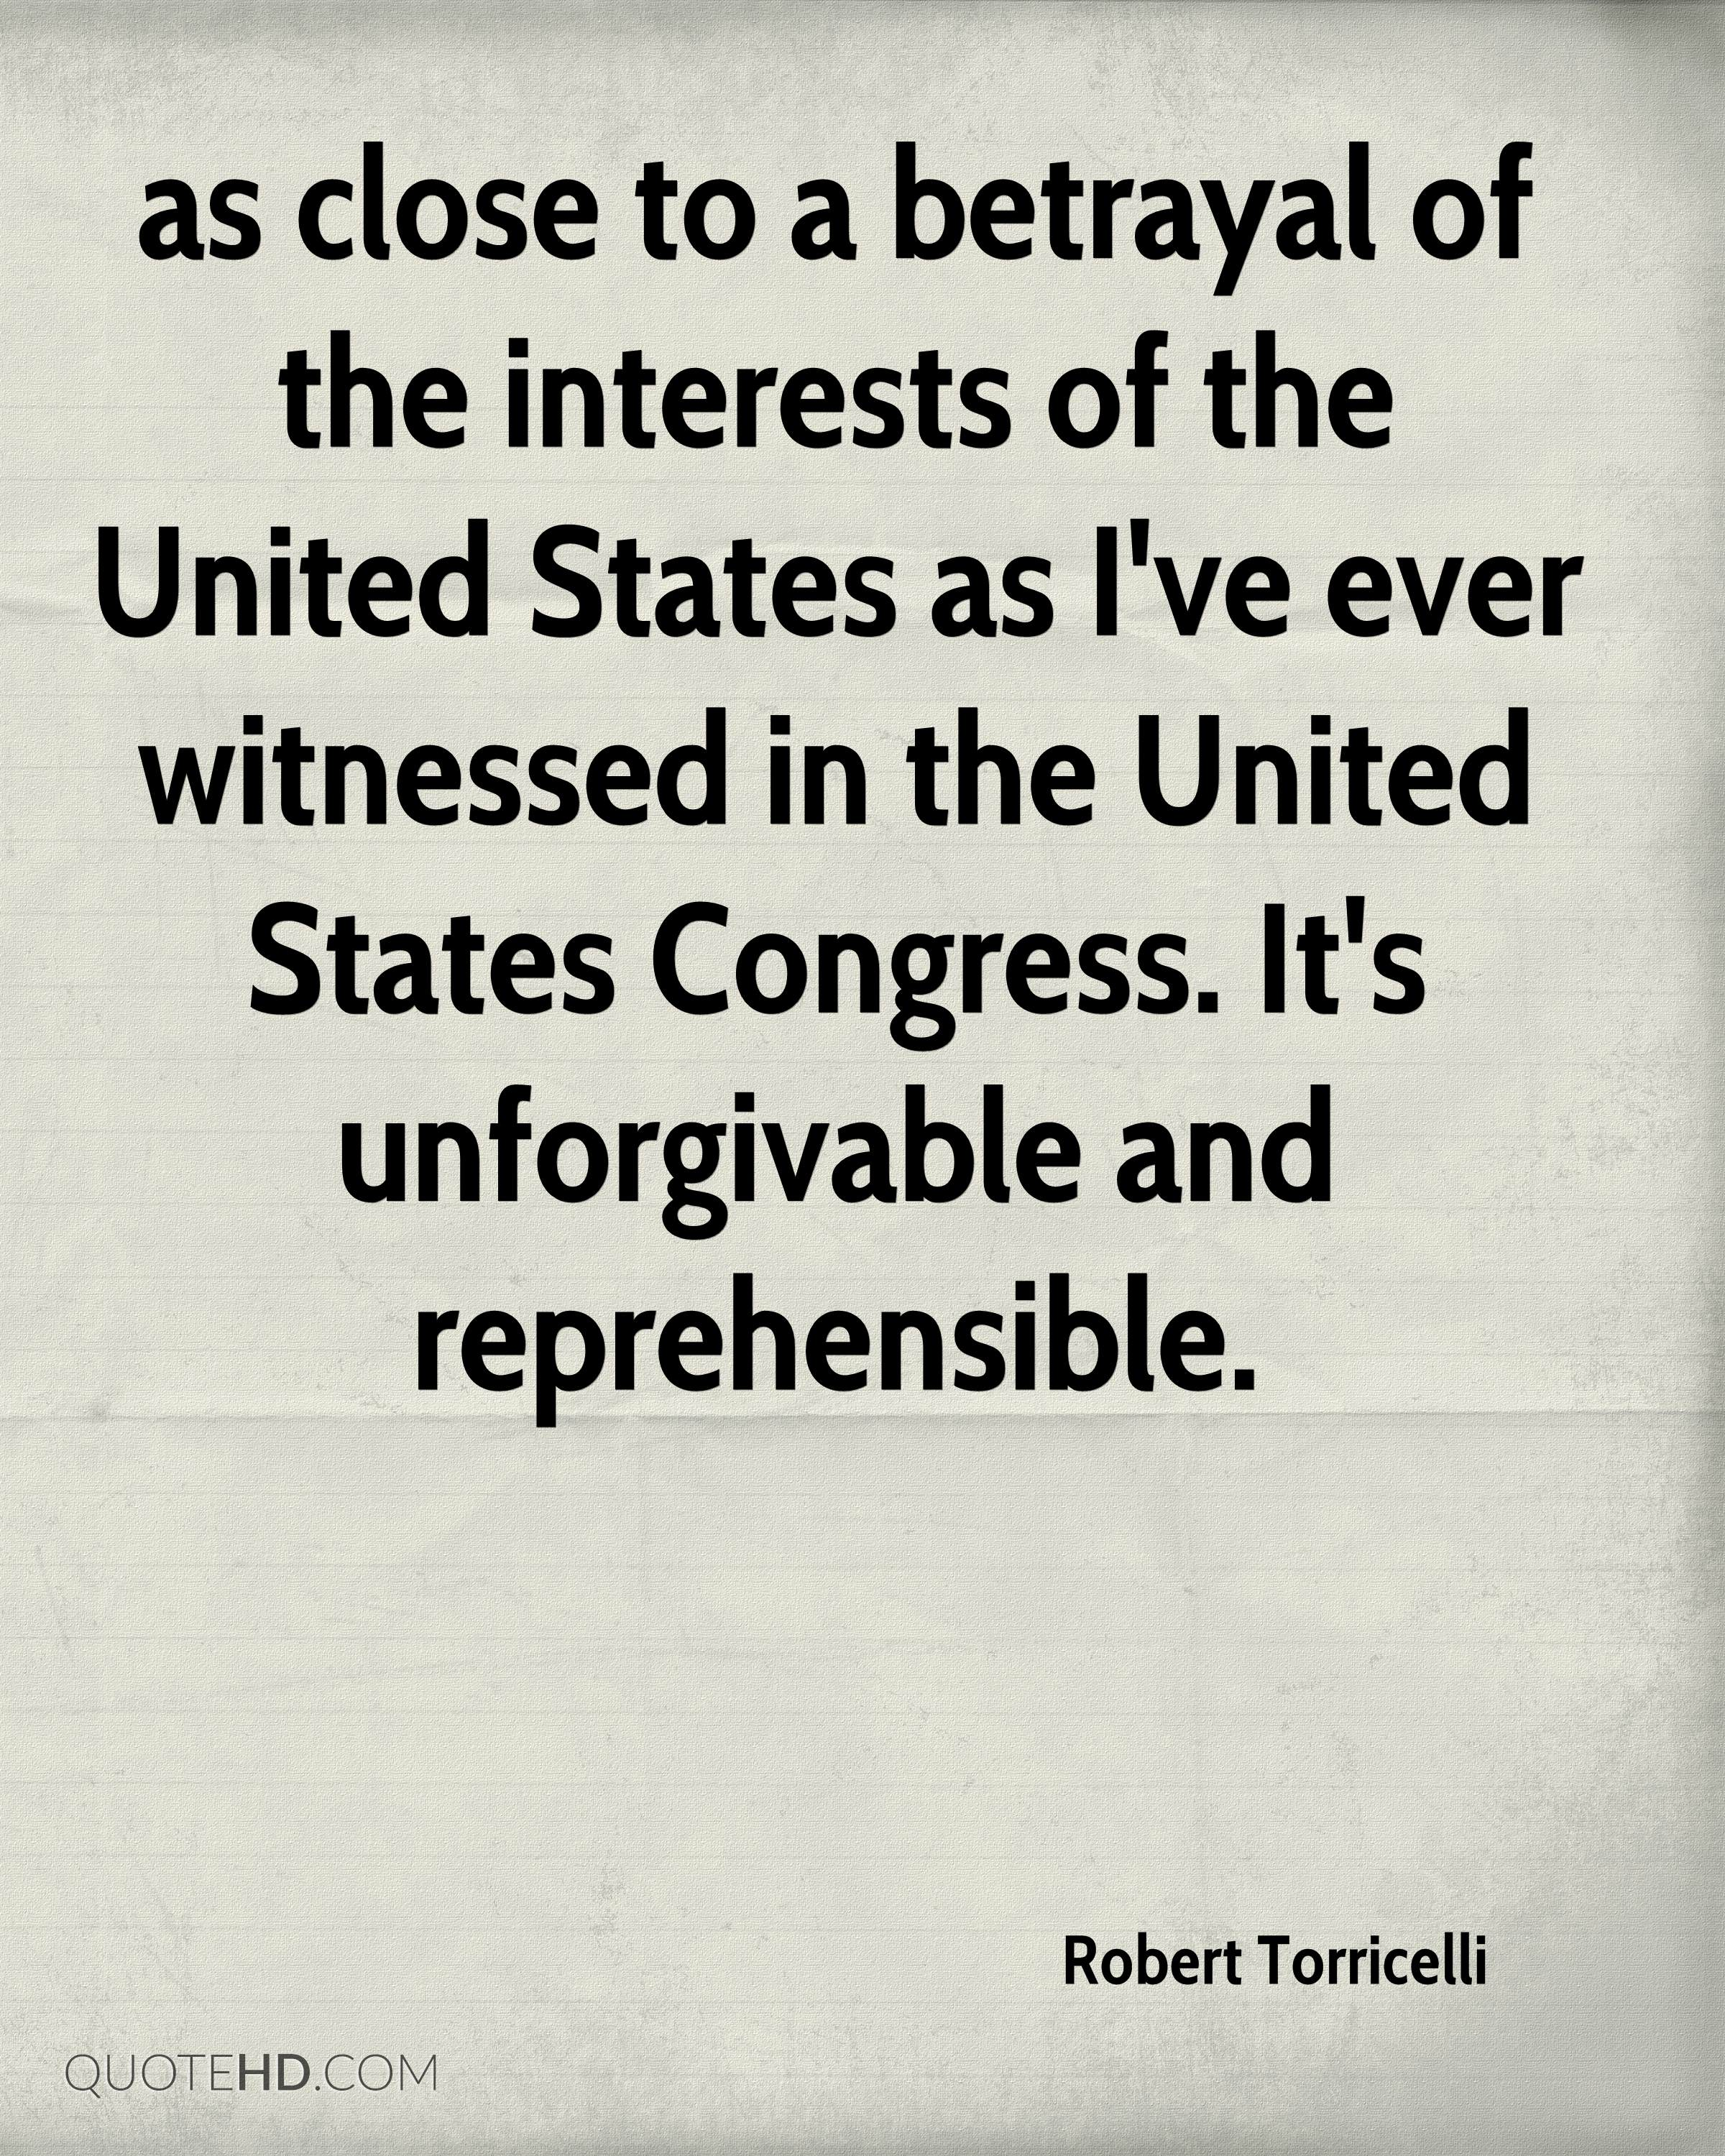 as close to a betrayal of the interests of the United States as I've ever witnessed in the United States Congress. It's unforgivable and reprehensible.